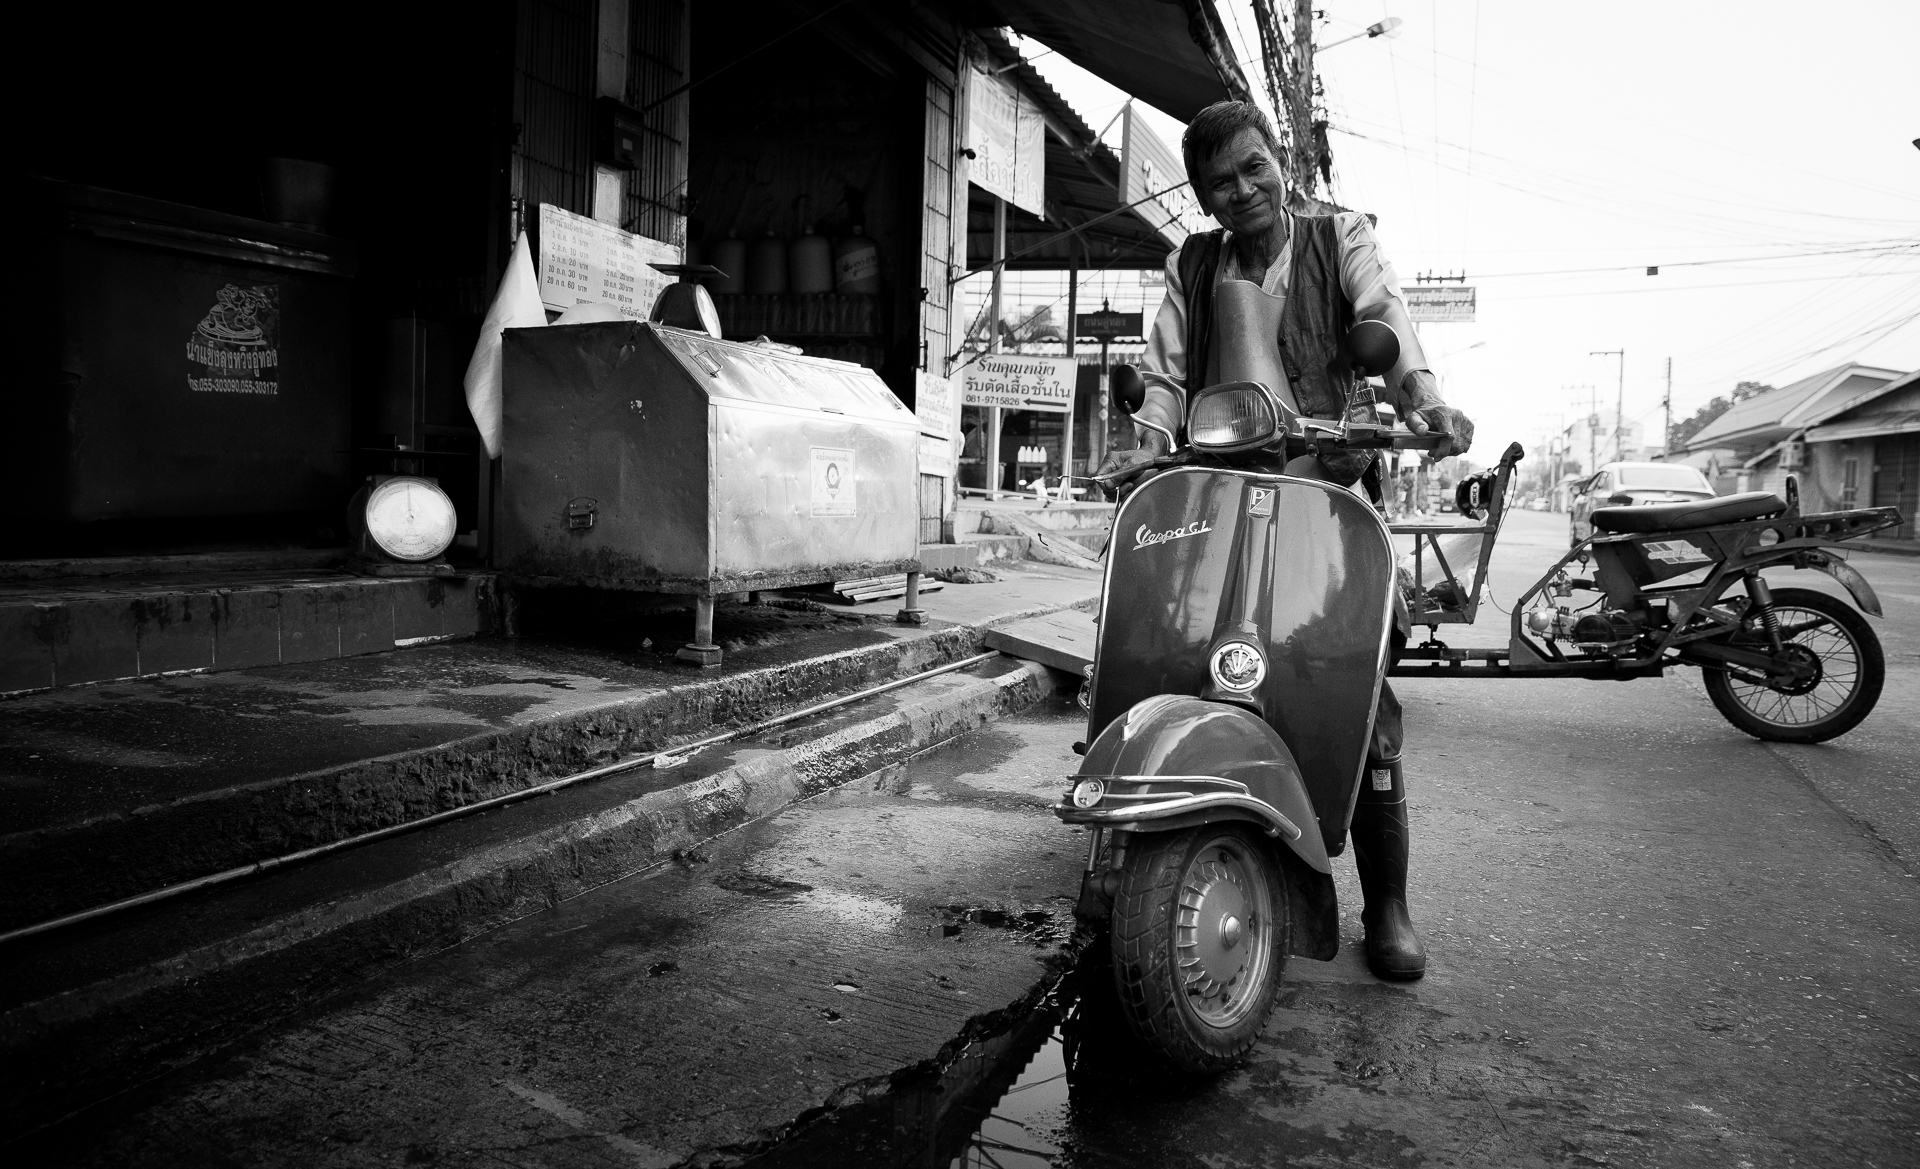 Vespa's are everywhere, Thailand